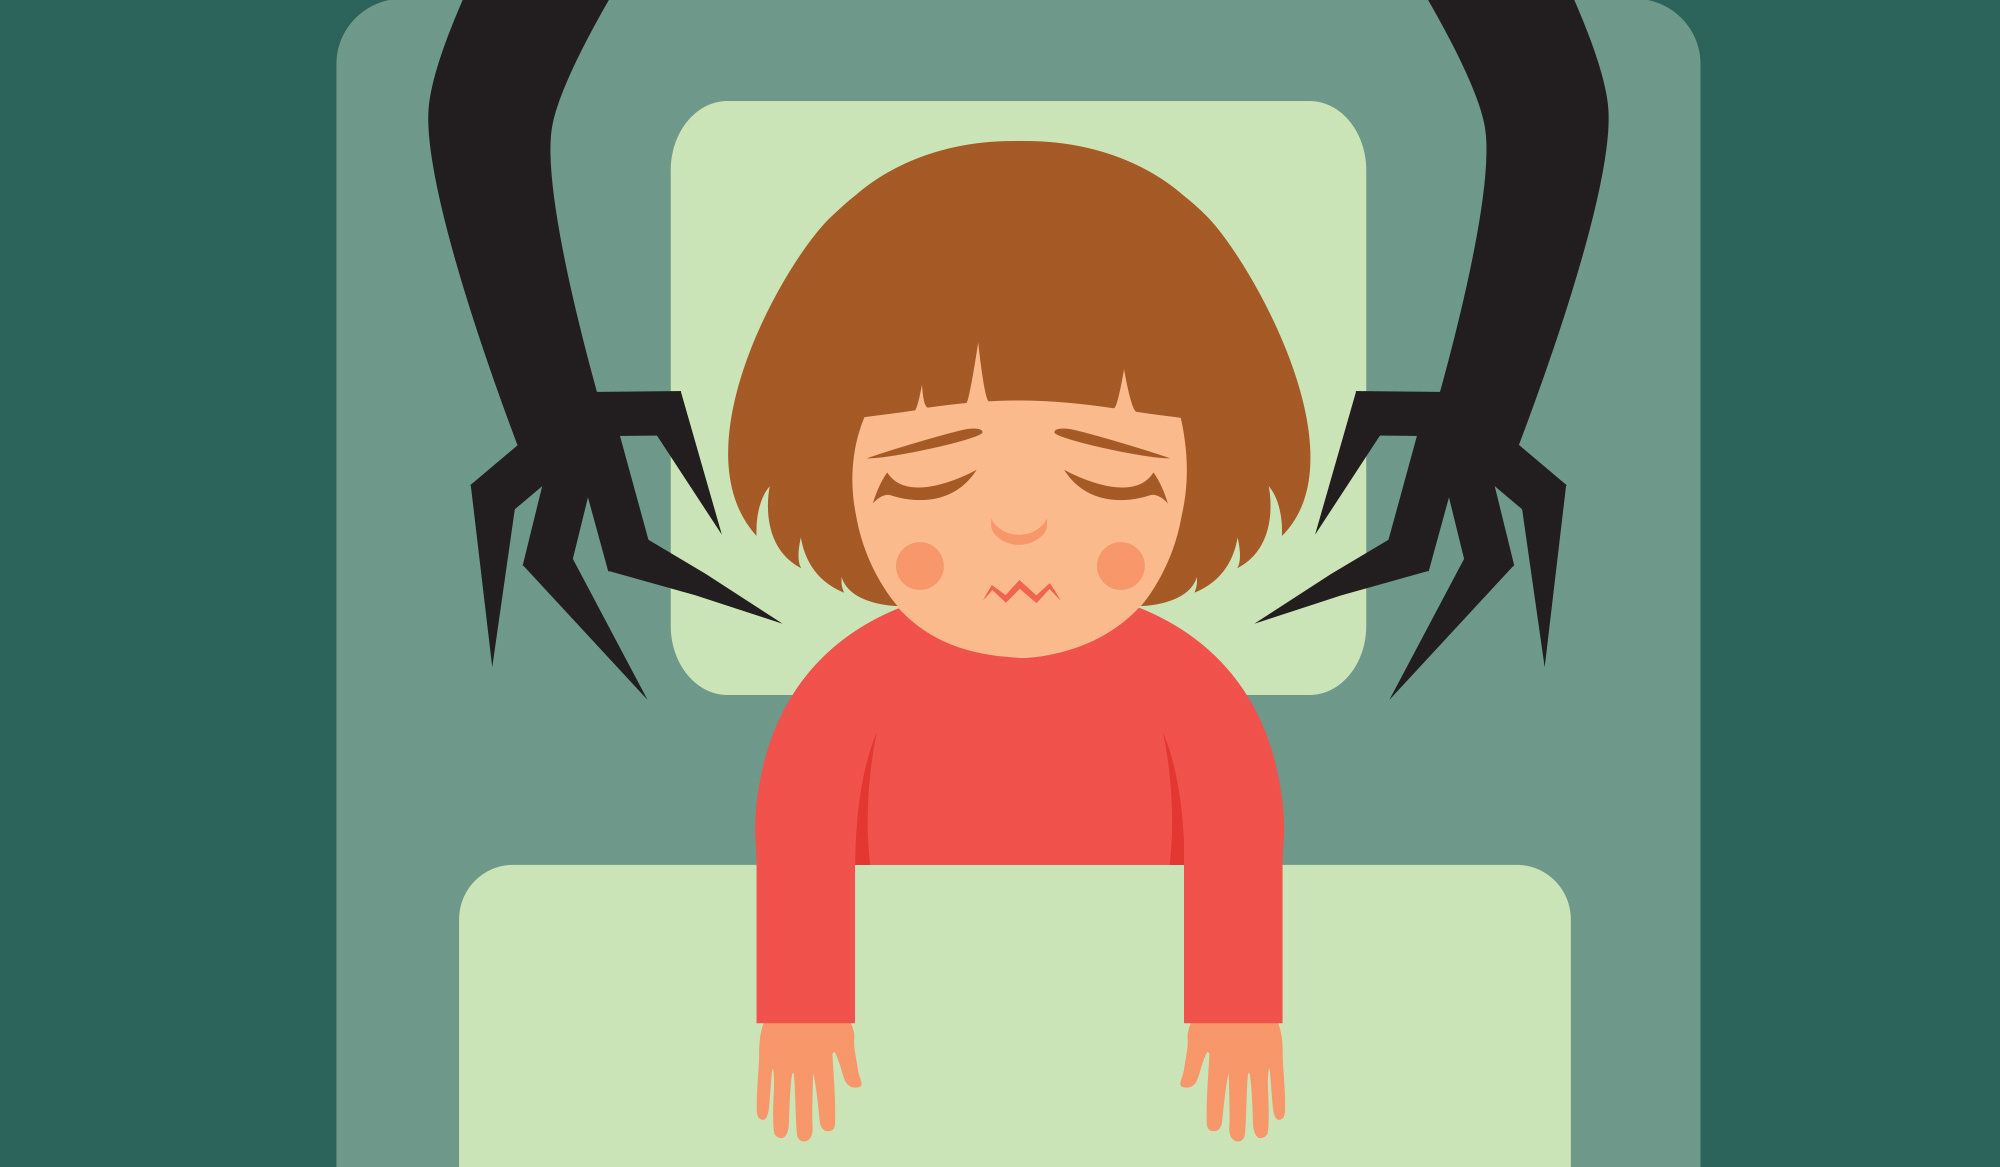 Fear clipart unhealthy. What does to your